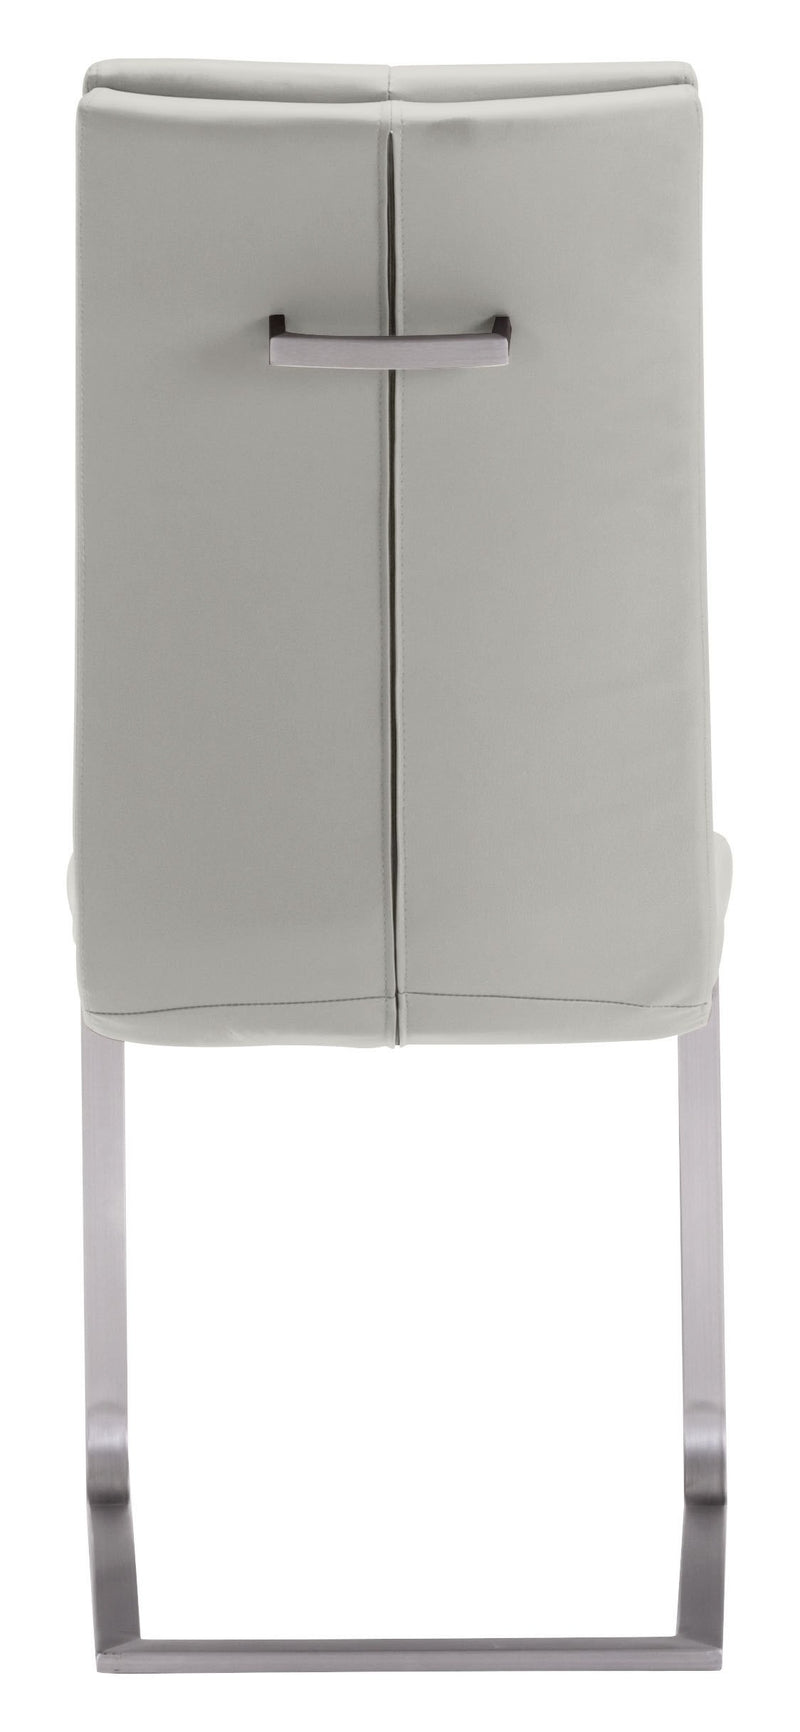 Rosemont Dining Chair Taupe (Set of 2)